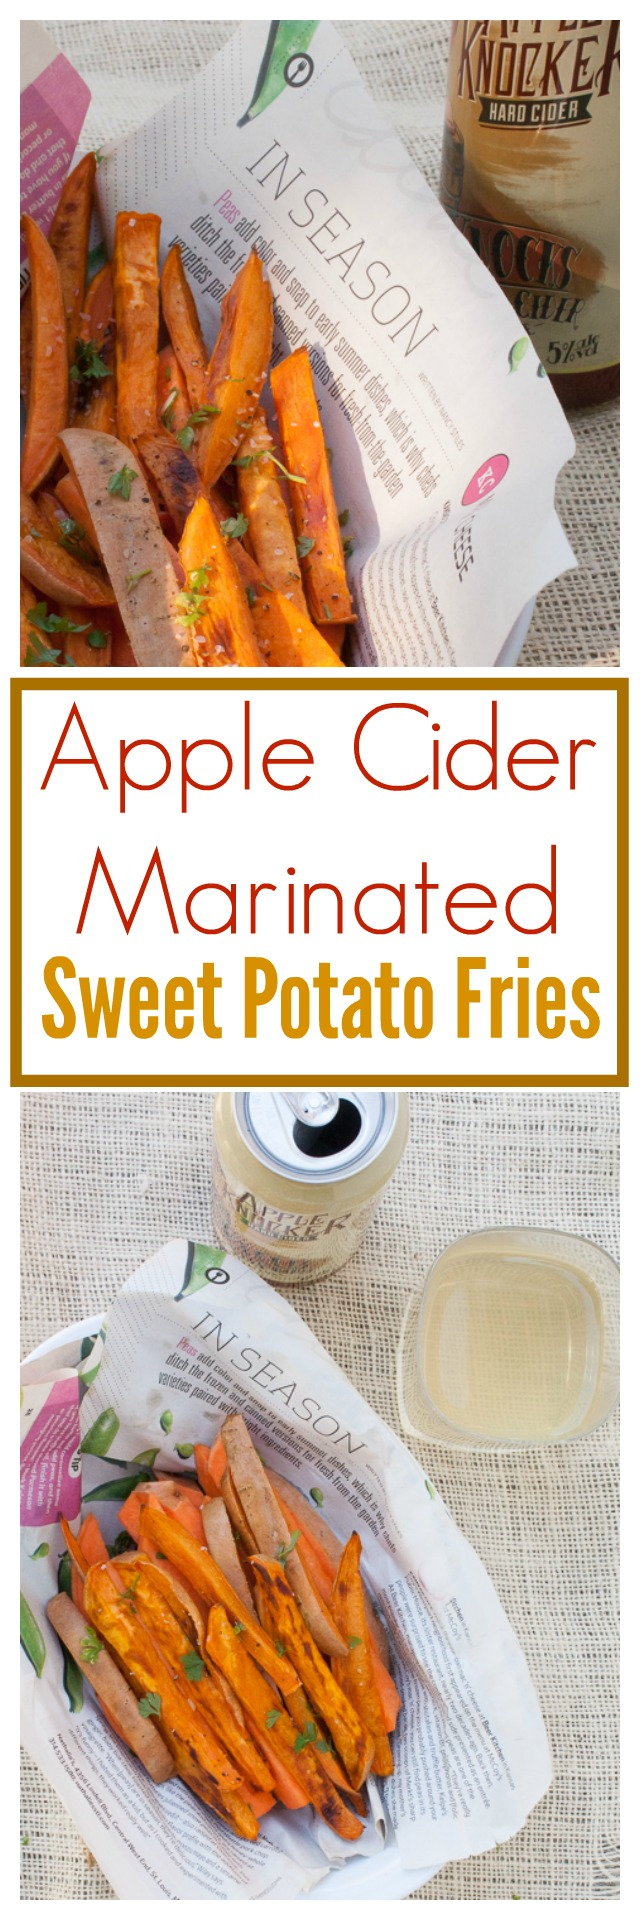 Apple cider makes these fries extra crispy. Baked sweet potato fries, so they're healthy too! #AD Apple Cider Marinated Sweet Potato Fries | @TspCurry